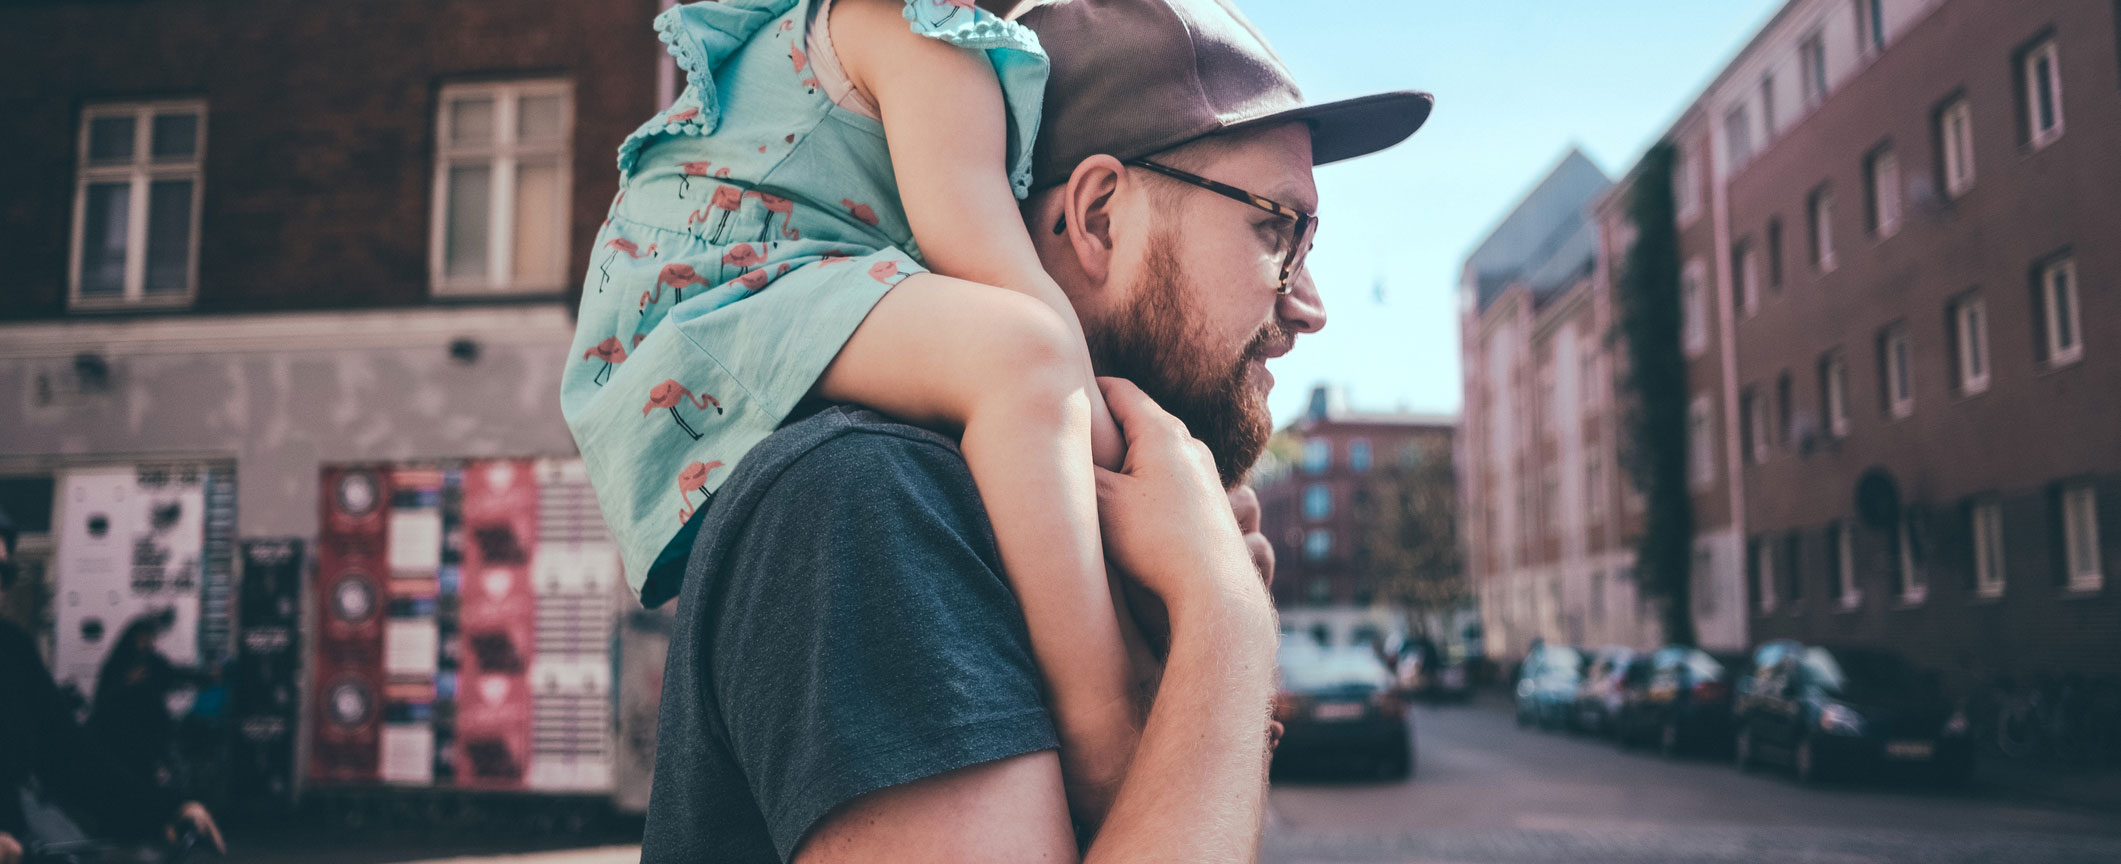 Daughter on Fathers Shoulders 2